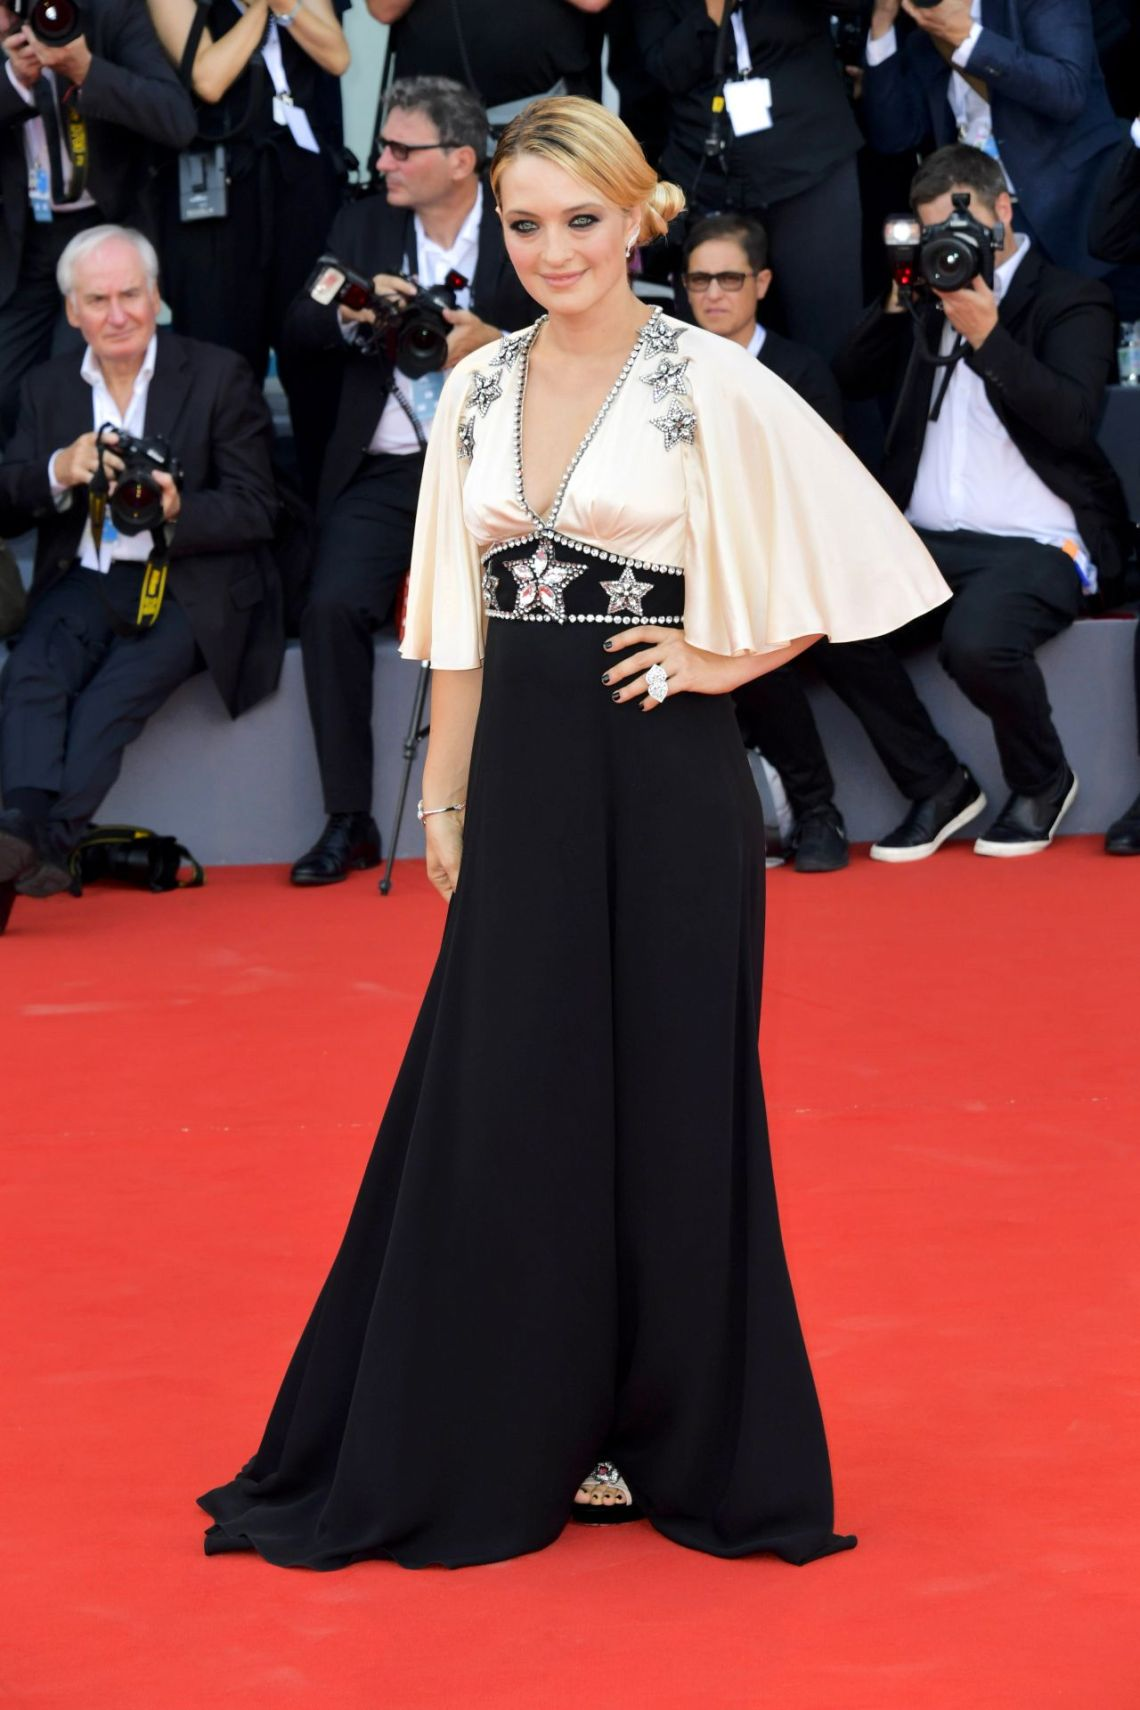 carolina-crescentini-2018-venice-film-festival-opening-ceremony-and-first-man-red-carpet-8gucci